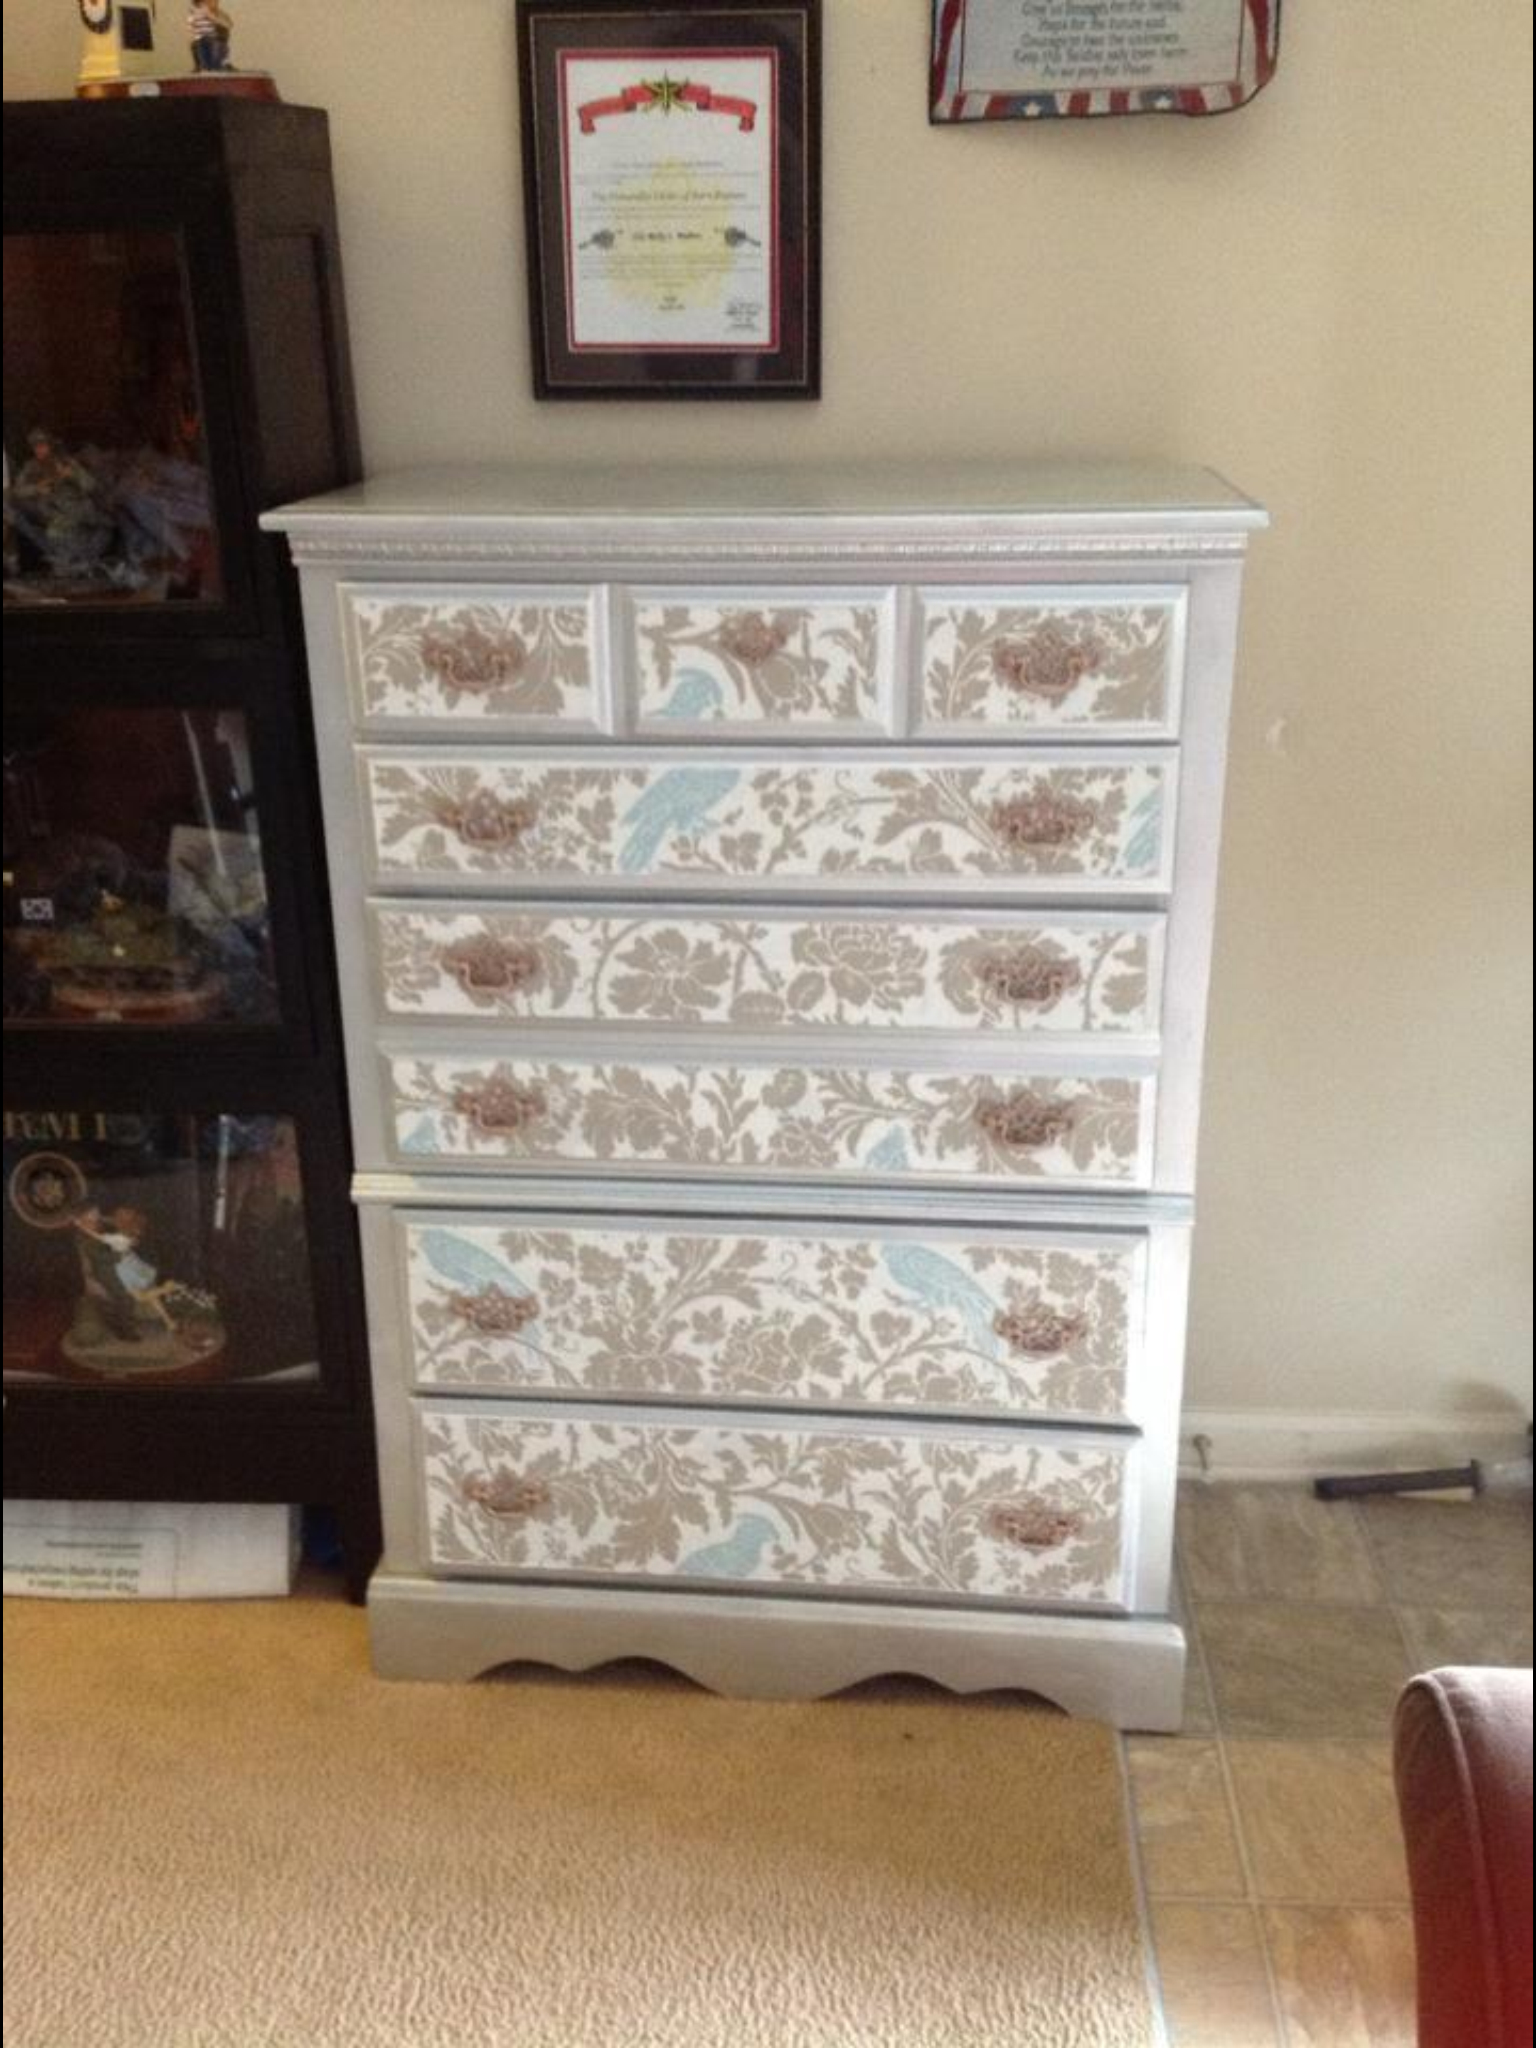 47+] How to Wallpaper Furniture on